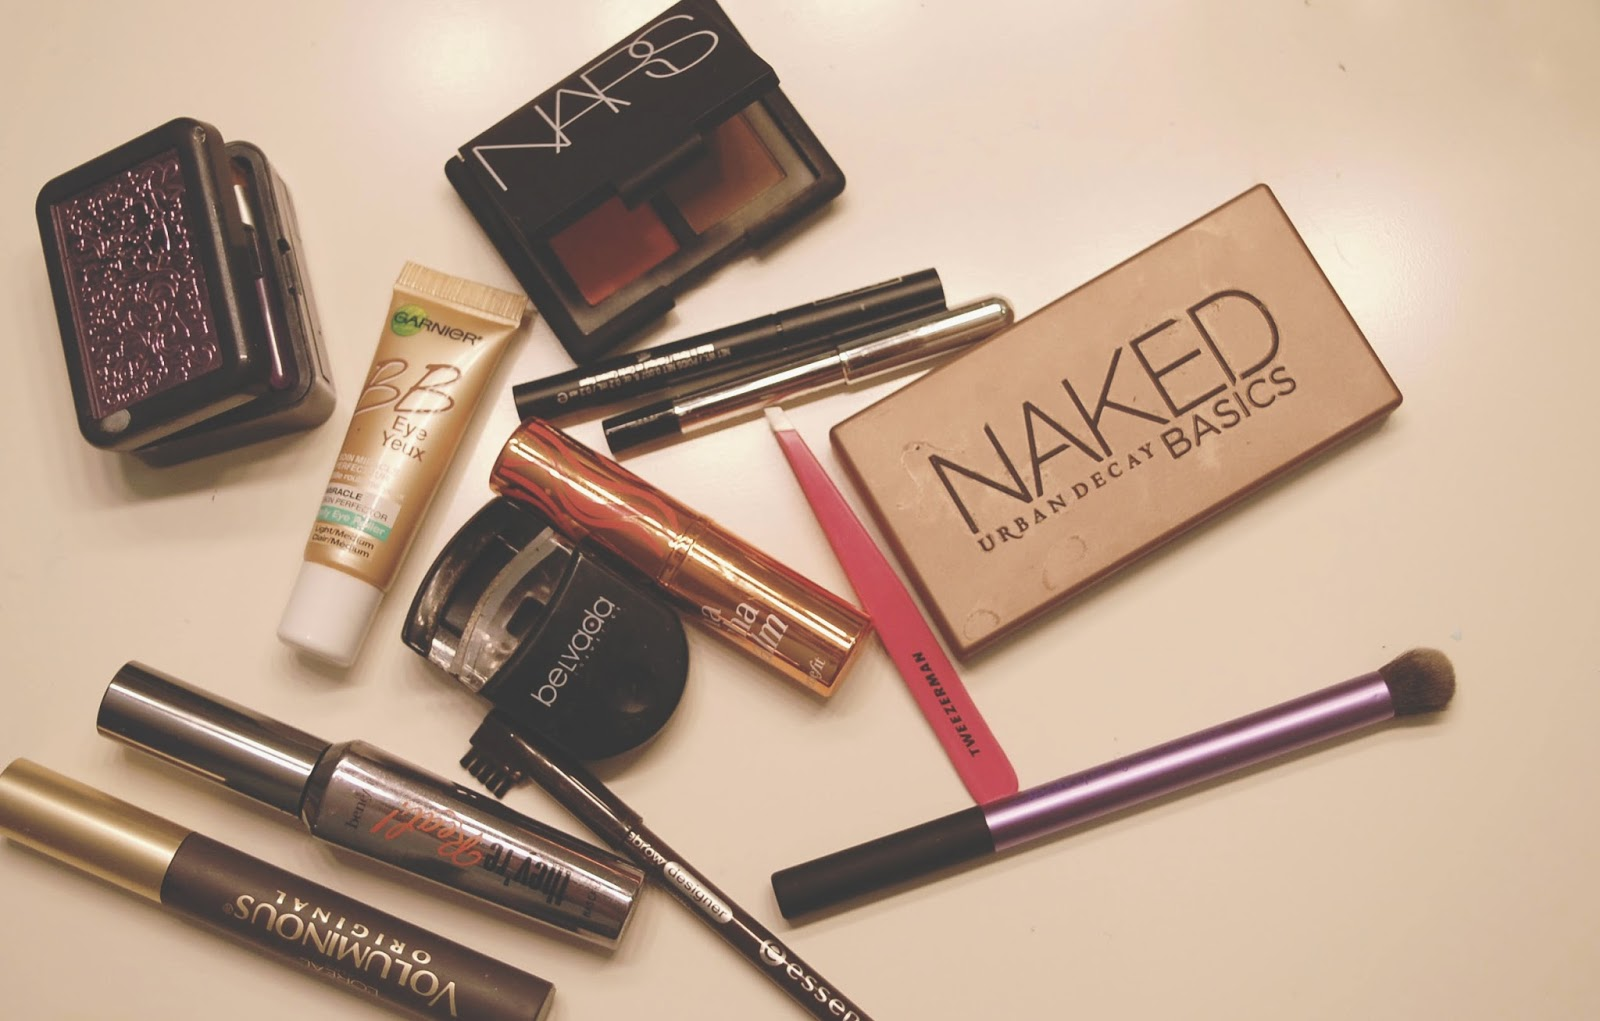 Favourite Makeup Urban Decay Nars Naked Palette Benefit Marc by Marc Jacobs